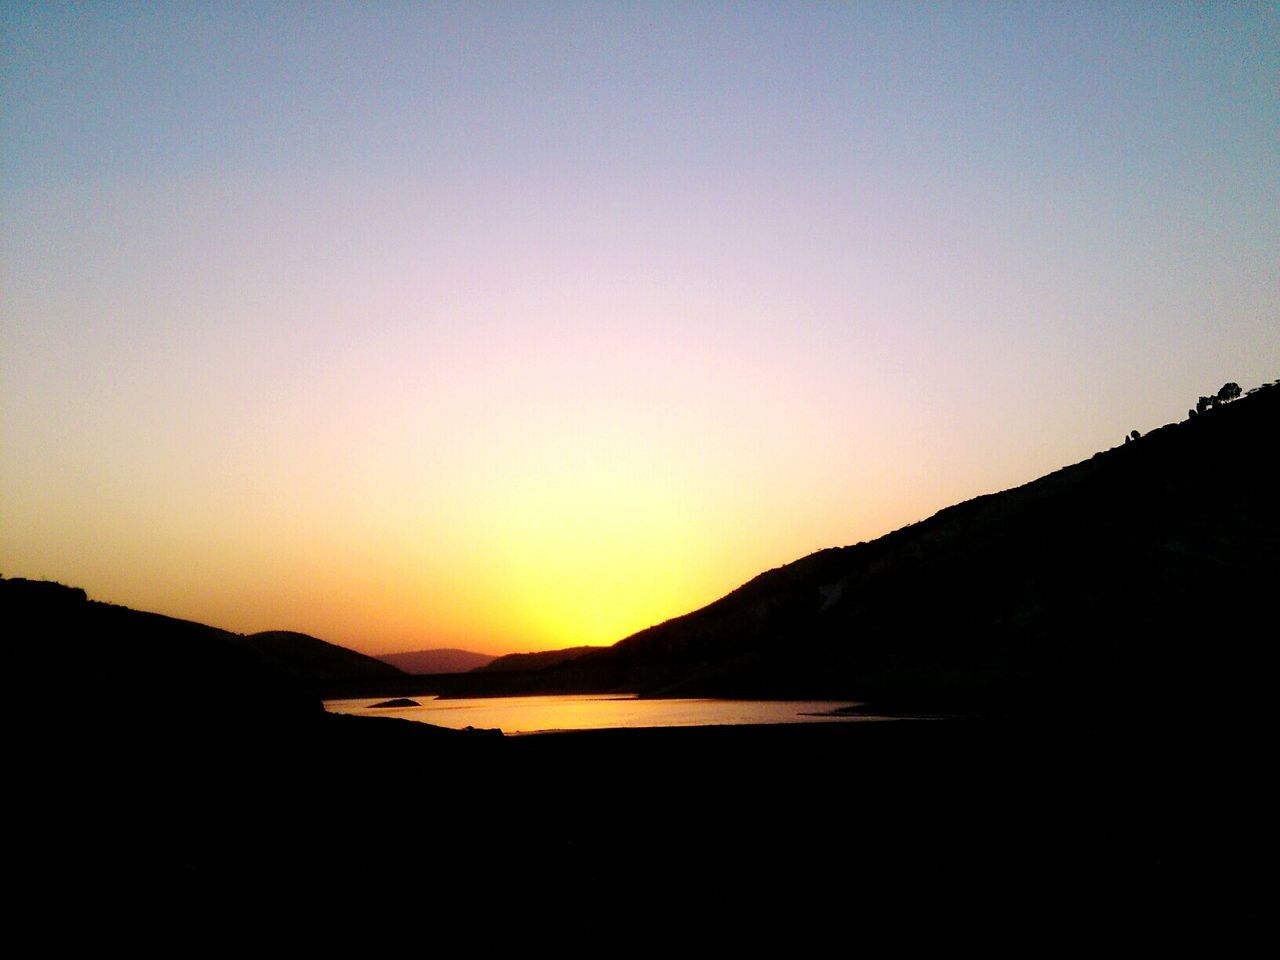 sunset, silhouette, nature, scenics, tranquil scene, beauty in nature, mountain, tranquility, no people, outdoors, sky, clear sky, landscape, mountain range, day